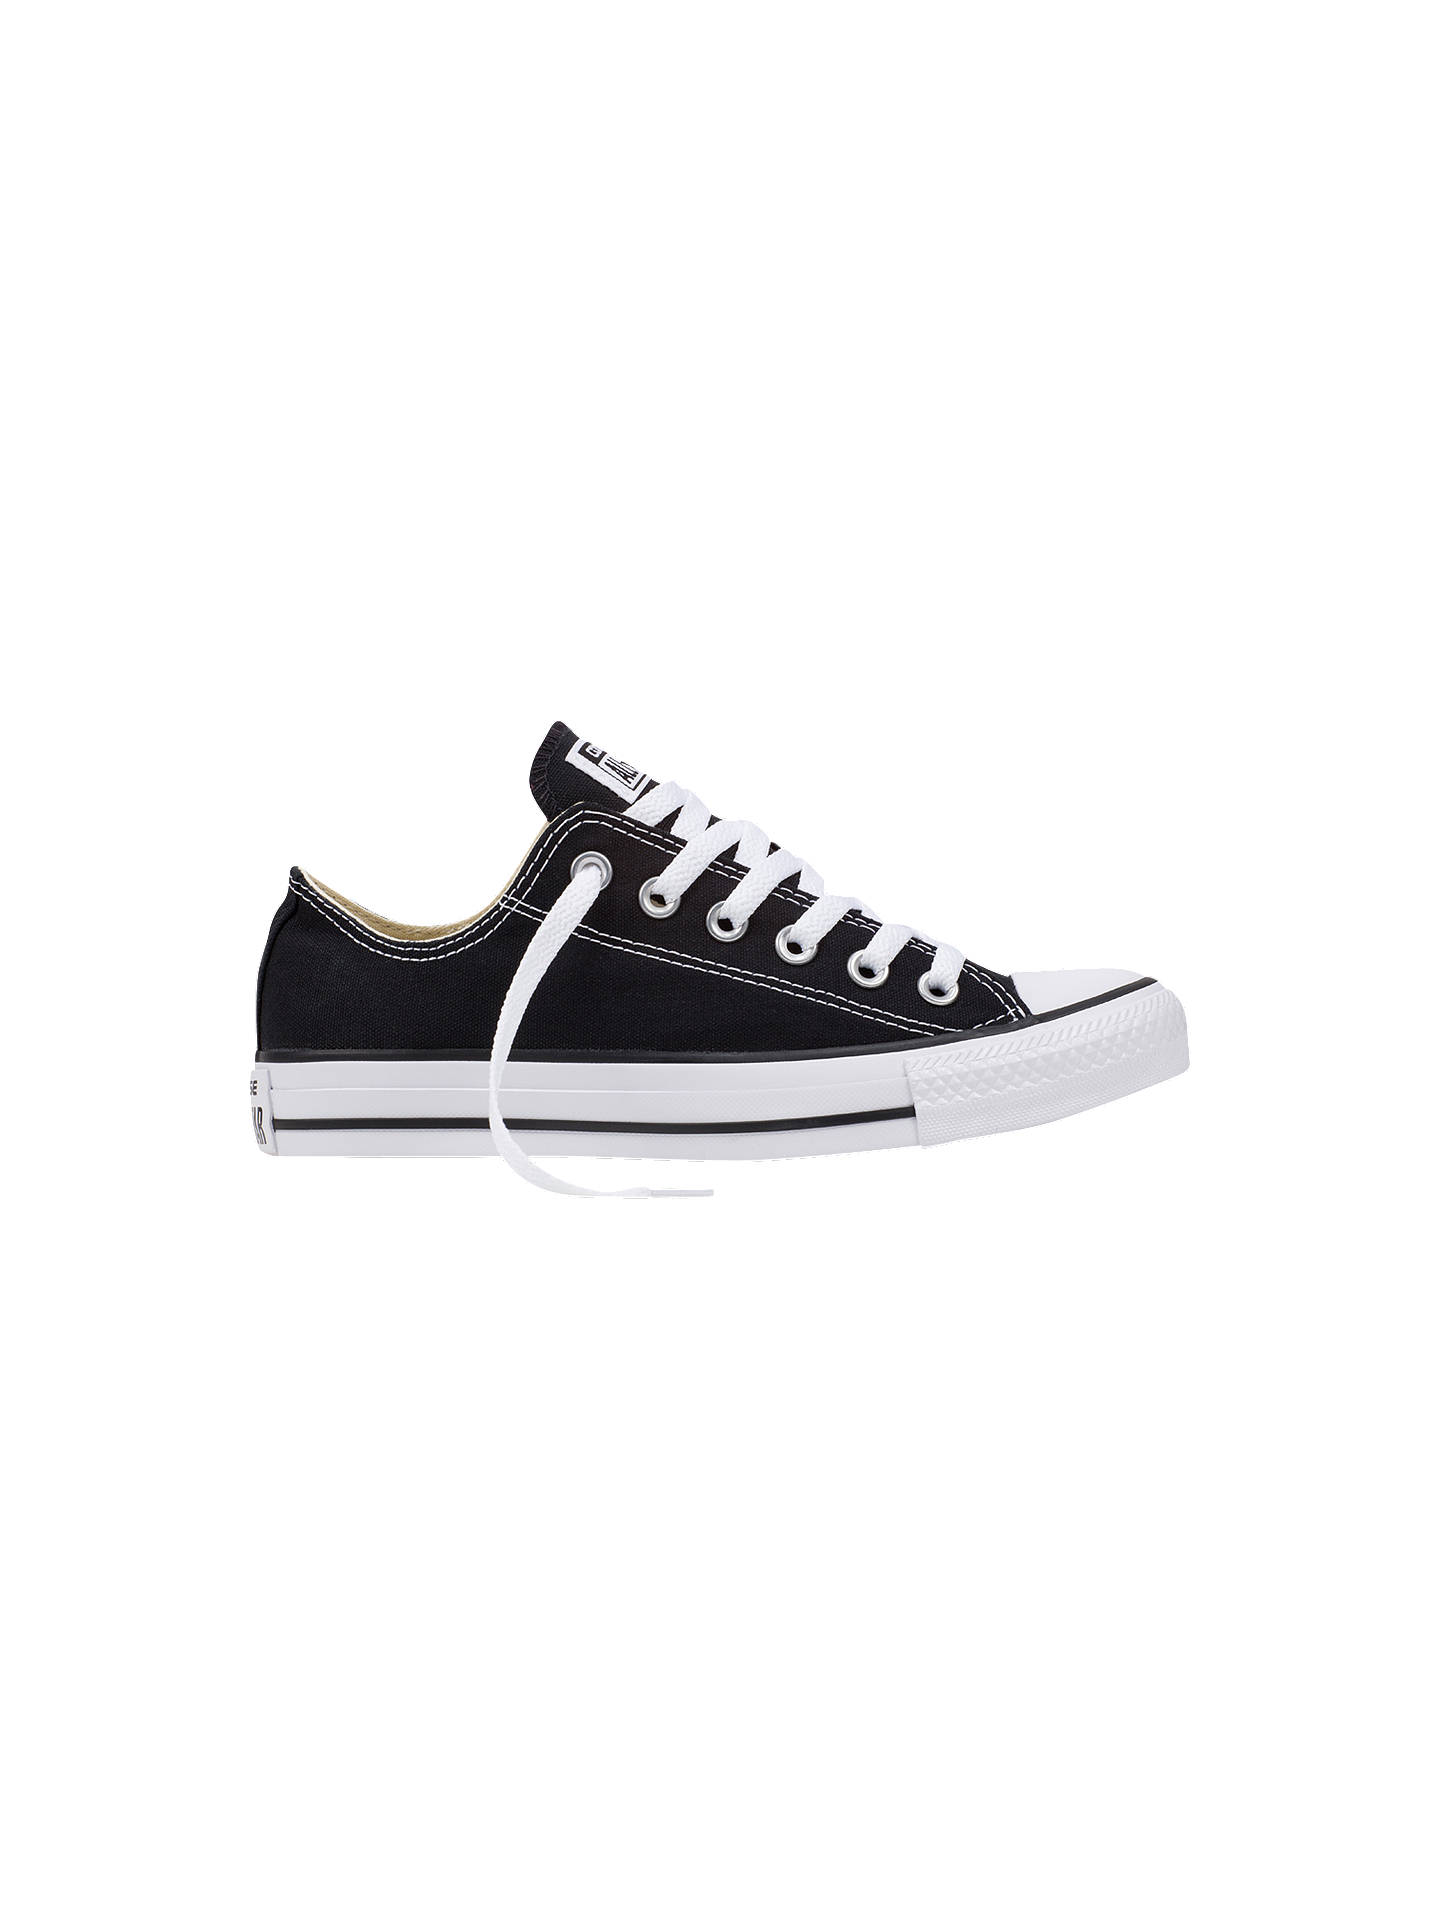 796e2a70b9e Converse Chuck Taylor All Star Ox Trainers at John Lewis   Partners